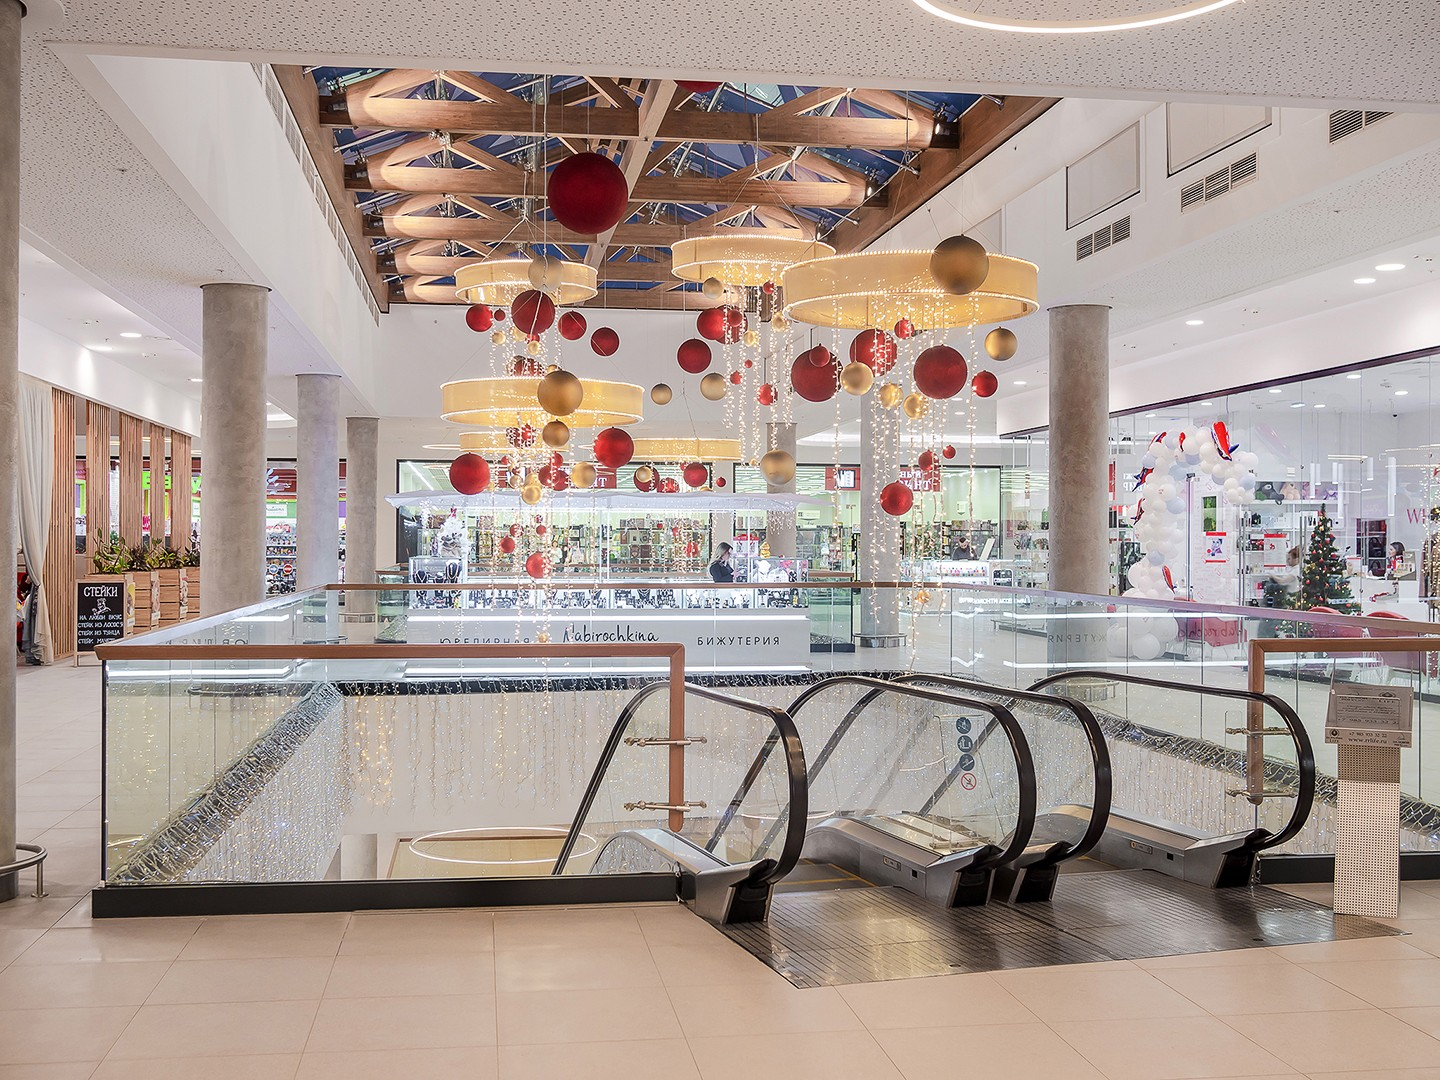 escalators in a shopping mall. interior photography of real estate in Moscow